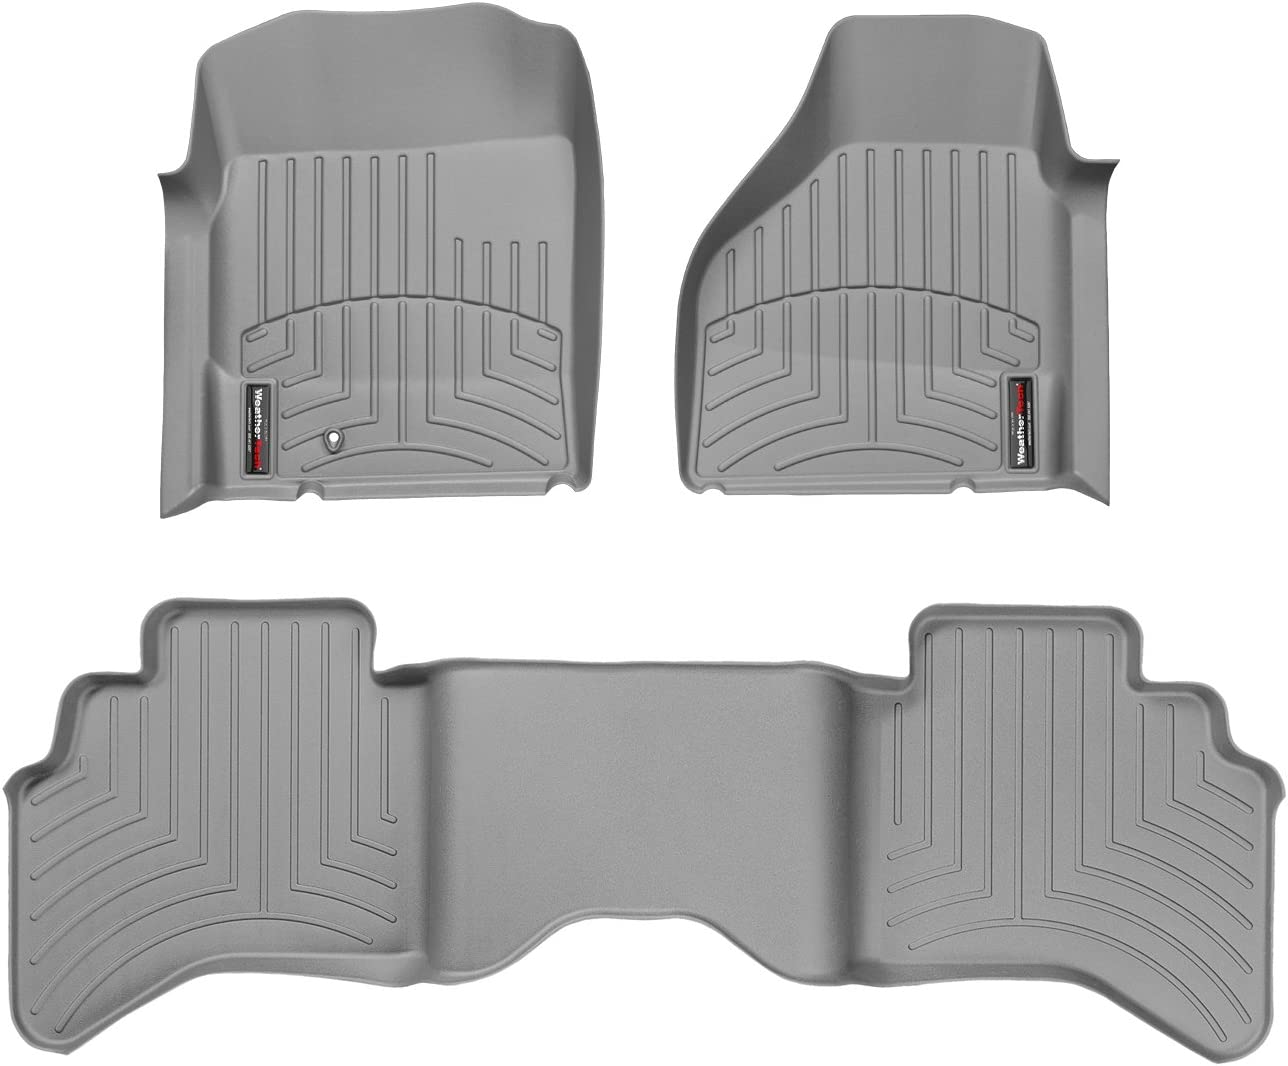 GGBAILEY D4248A-S1A-BK-LP Custom Fit Automotive Carpet Floor Mats for 1989 1993 Nissan 240SX Coupe Black Loop Driver Passenger /& Rear 1990 1992 1991